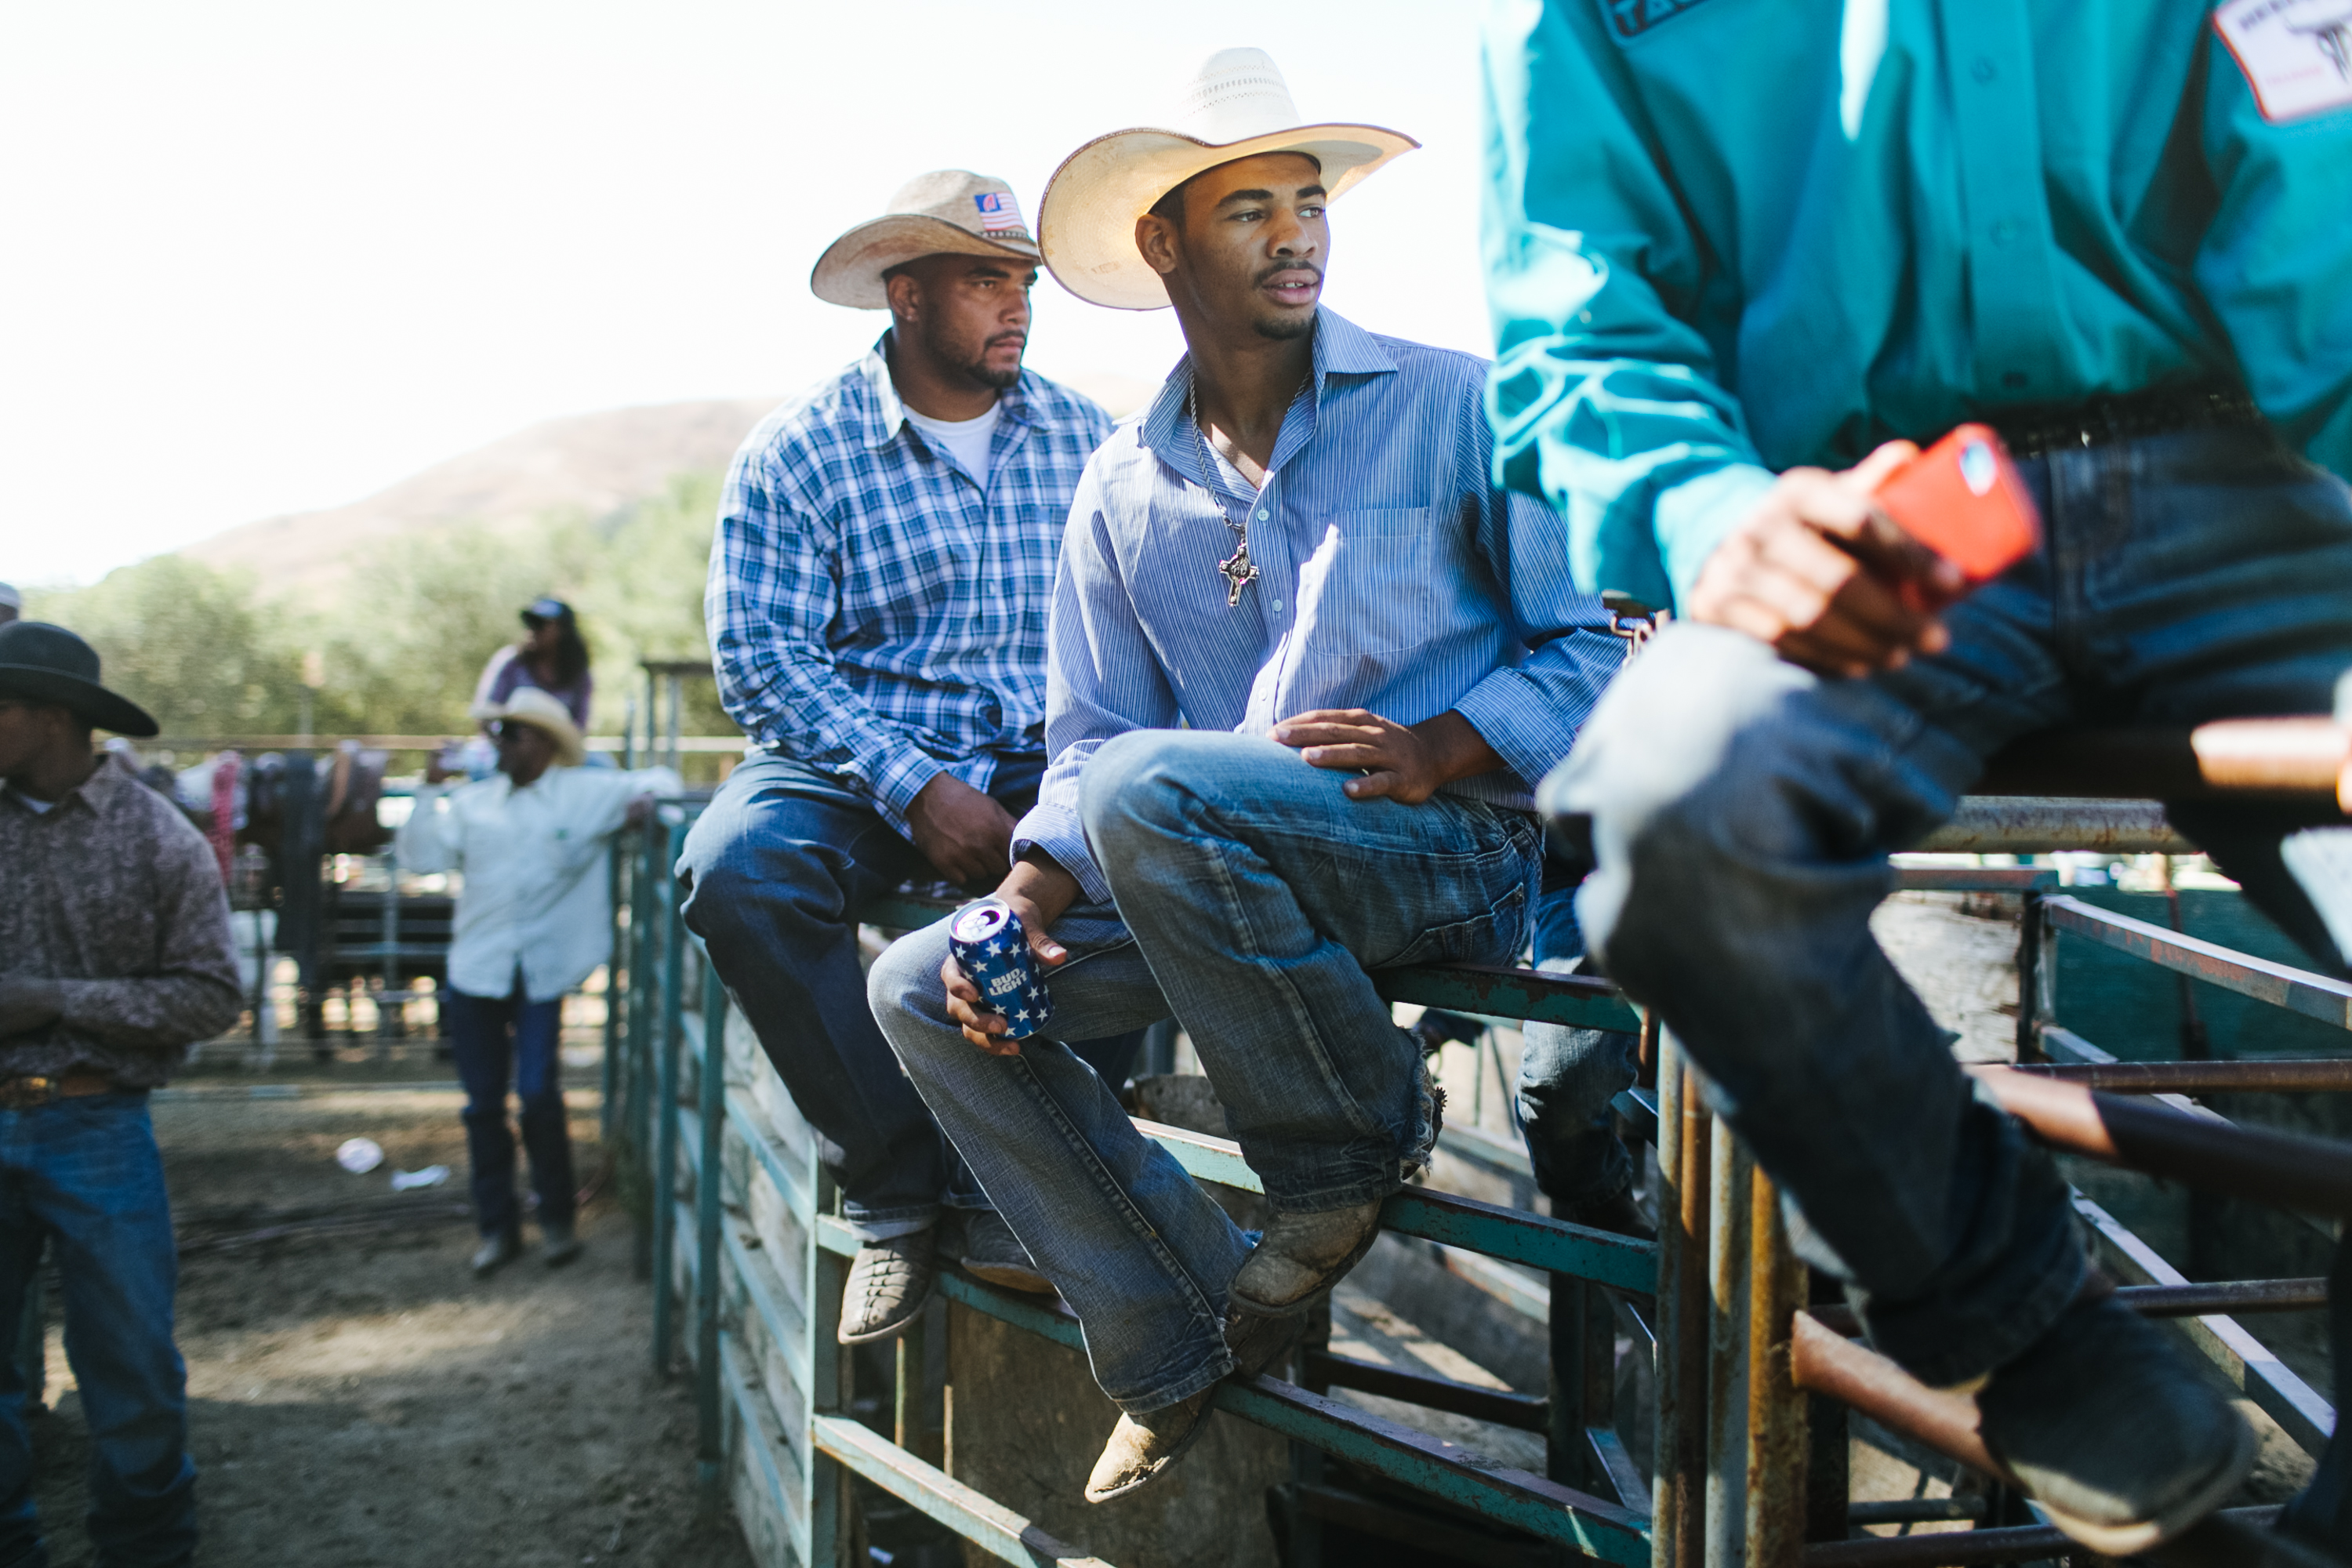 C J Demery 20 Looks On As The Tie Down Roping Event Takes Place At The Bill Pickett Rodeo